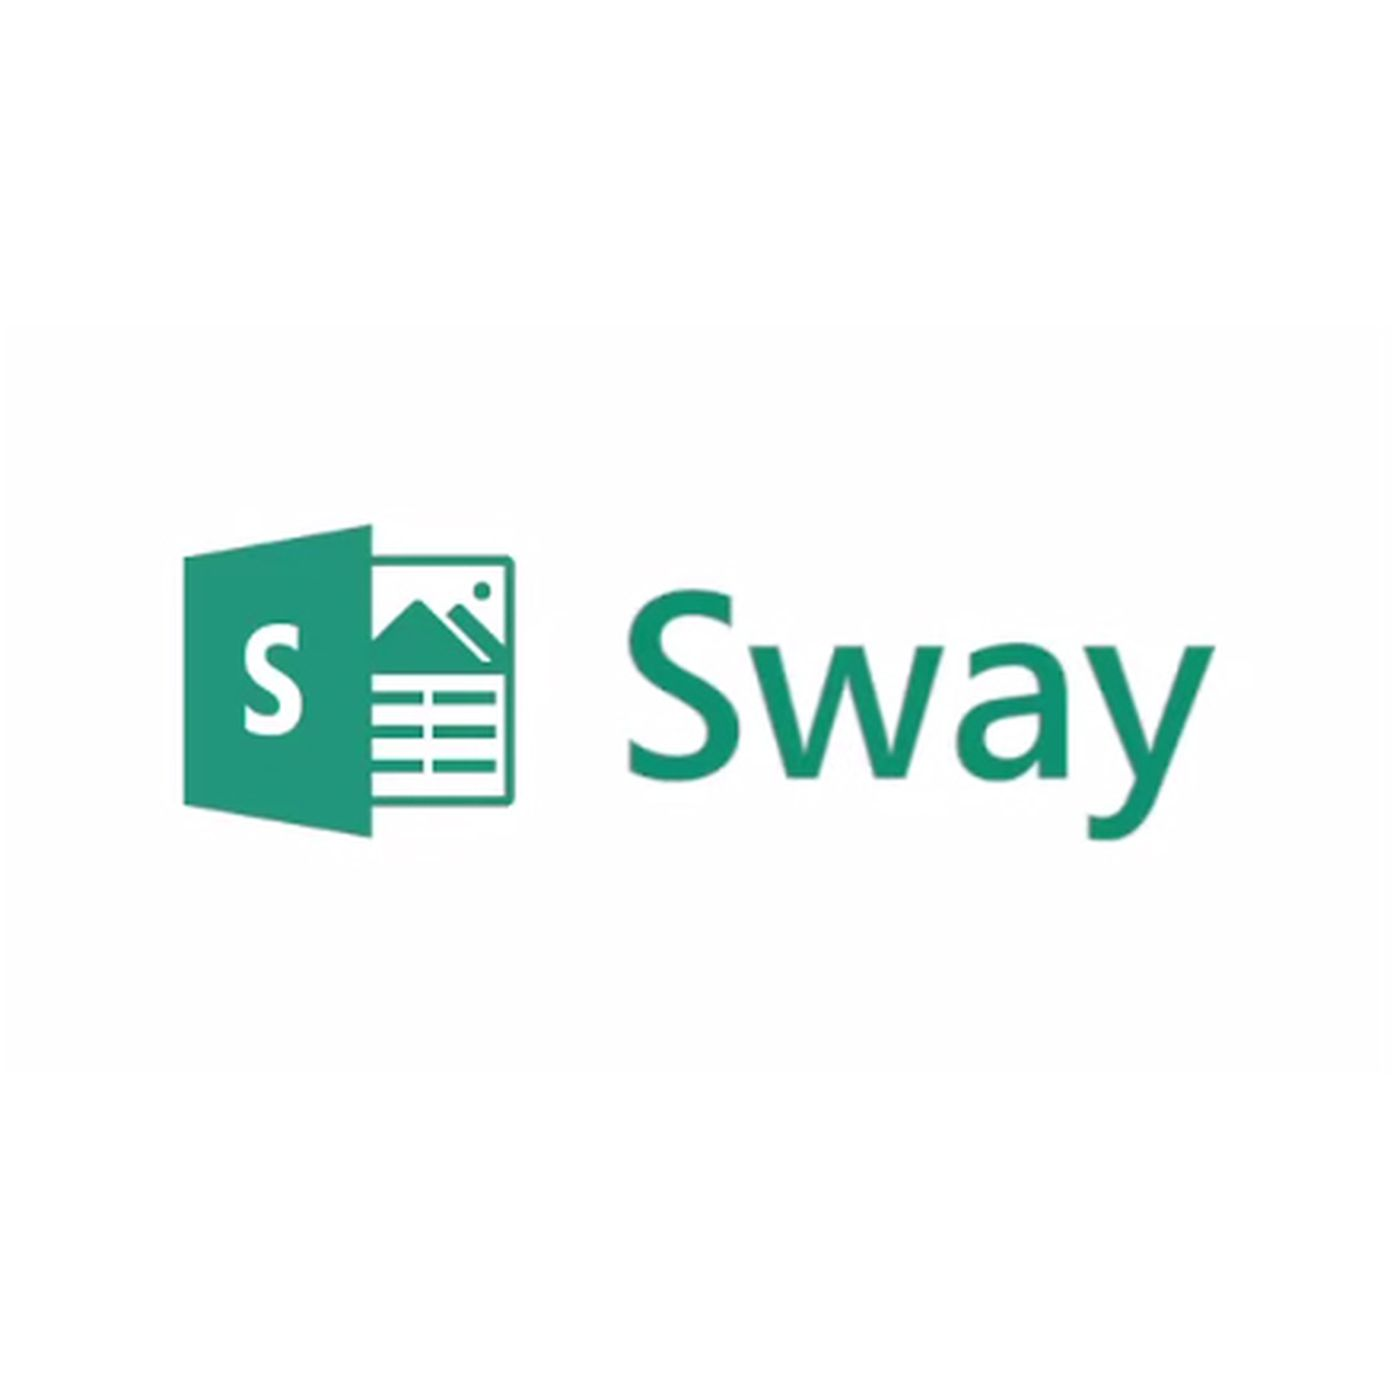 Microsoft's new Sway app is a tool to build elegant websites - The Verge